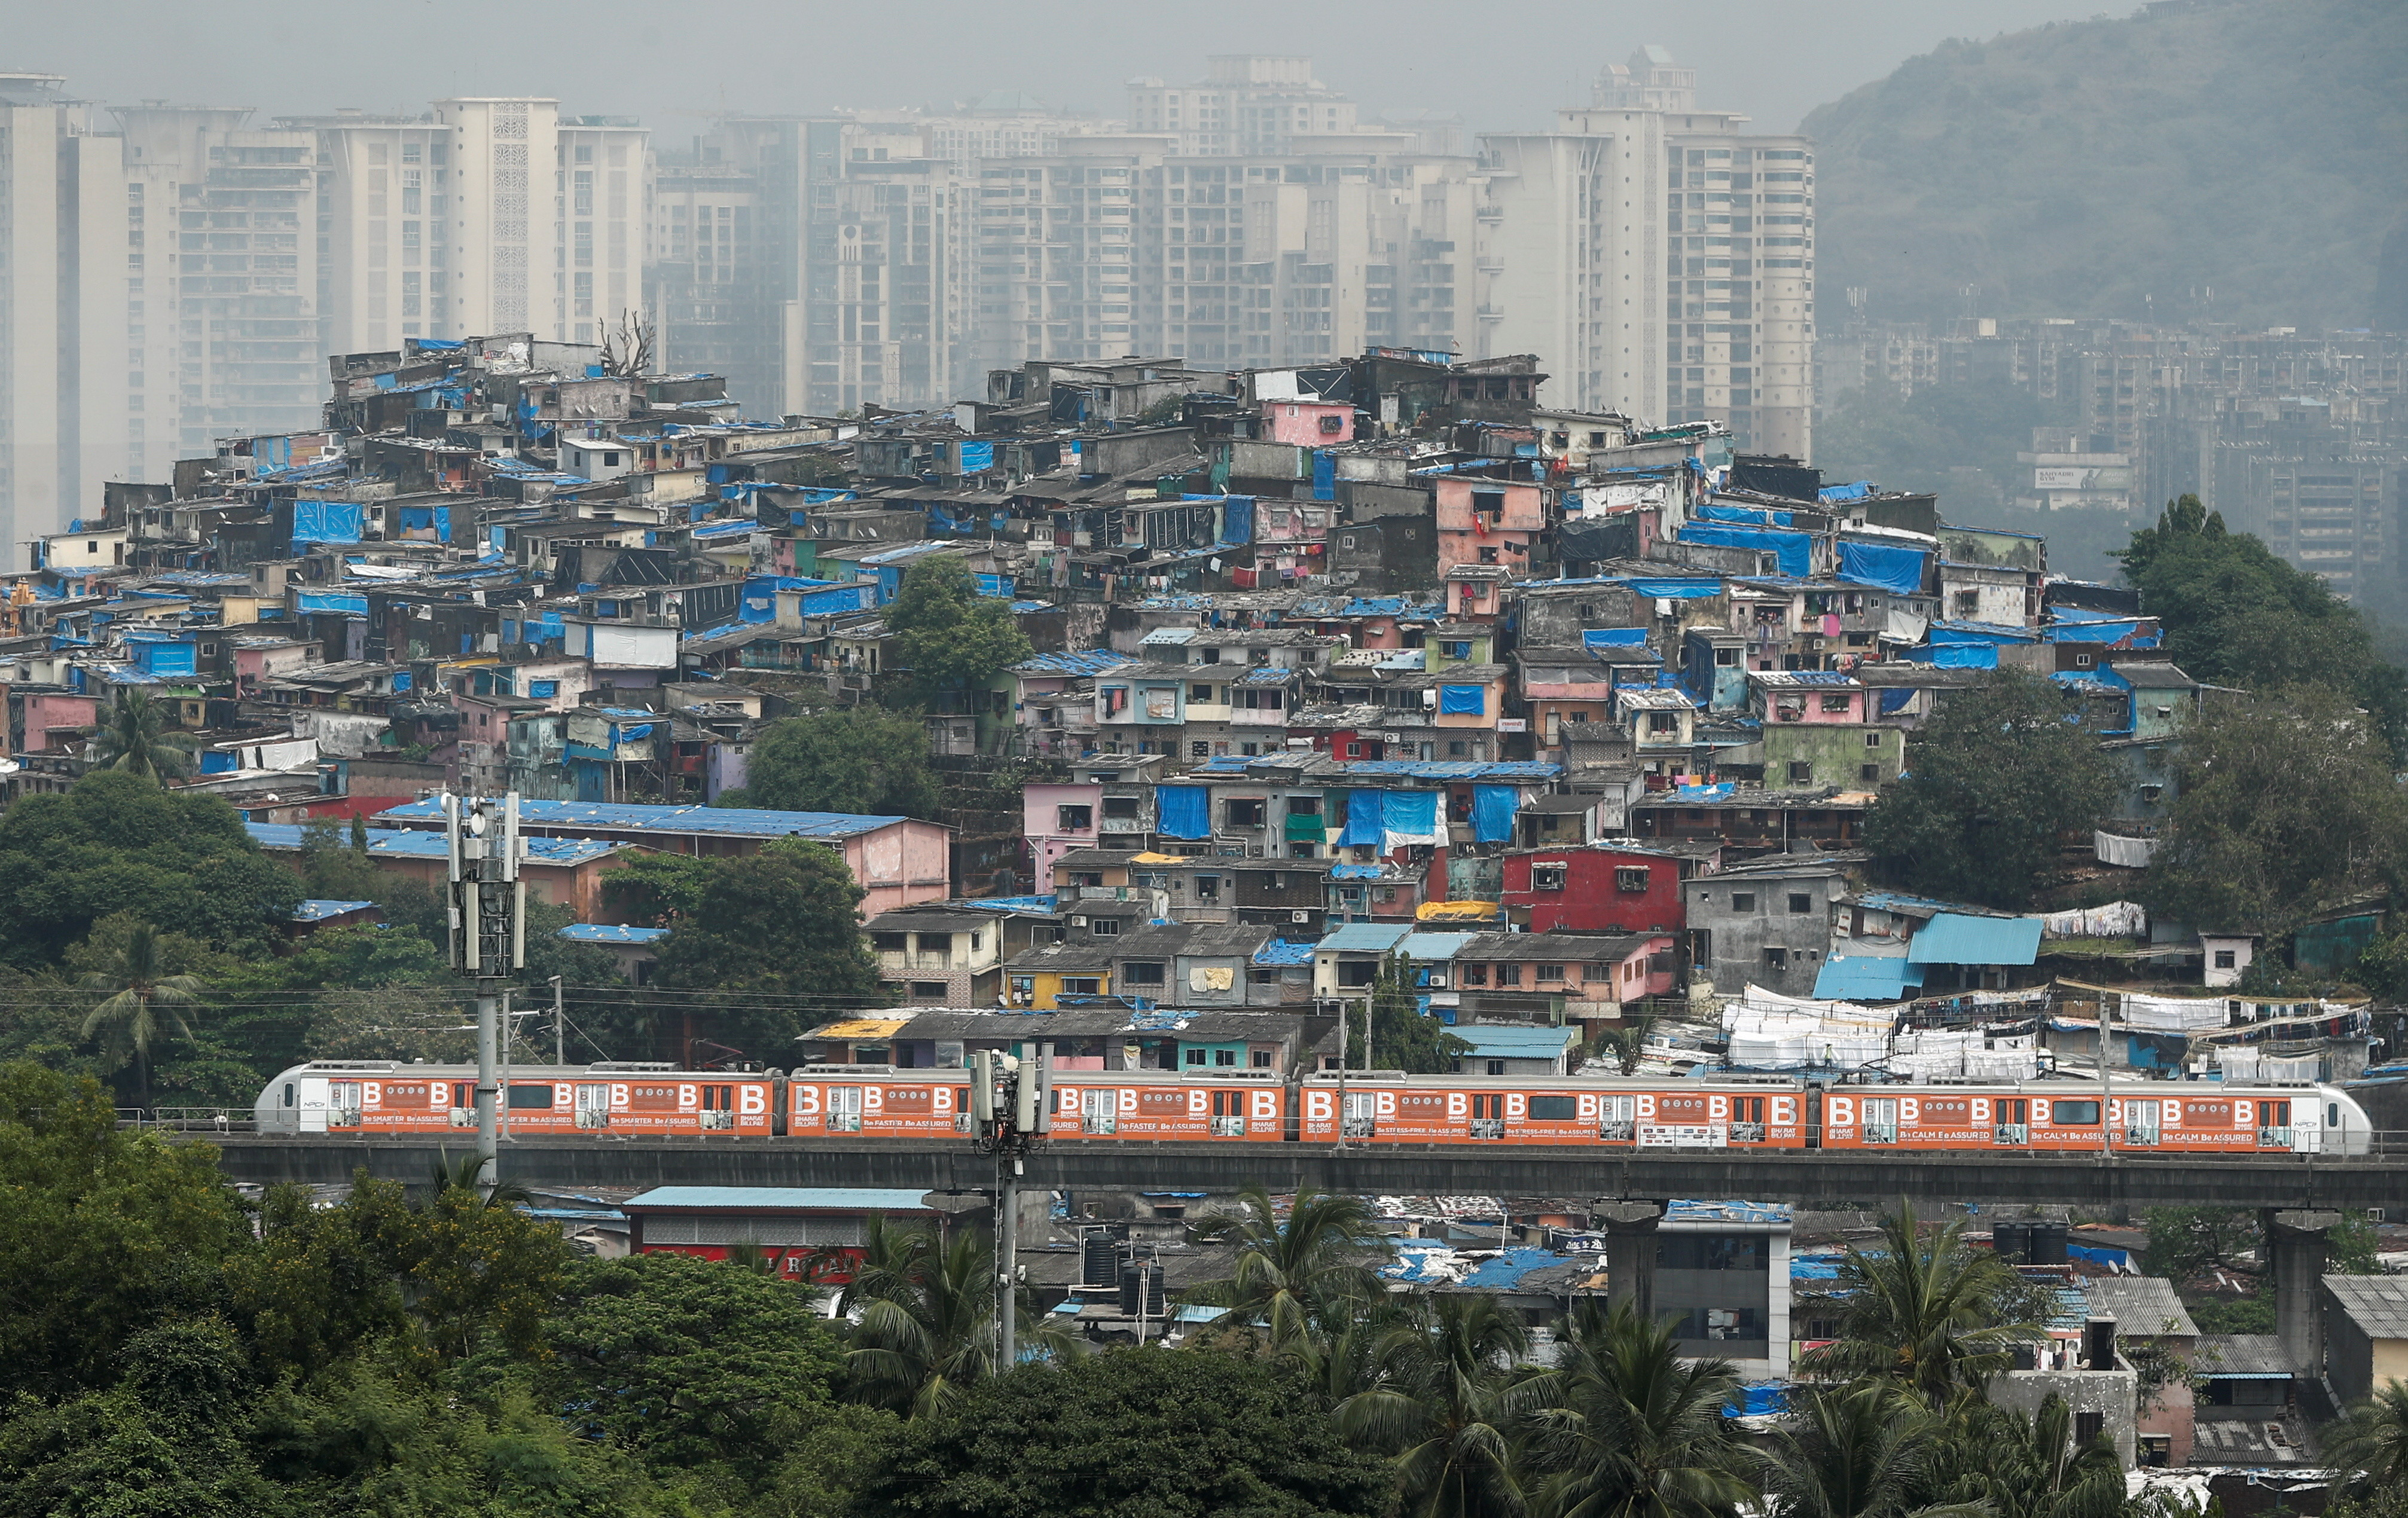 A metro train moves past slums and buildings after the restart of its operations, amidst the spread of the coronavirus disease (COVID-19), in Mumbai, India October 19, 2020